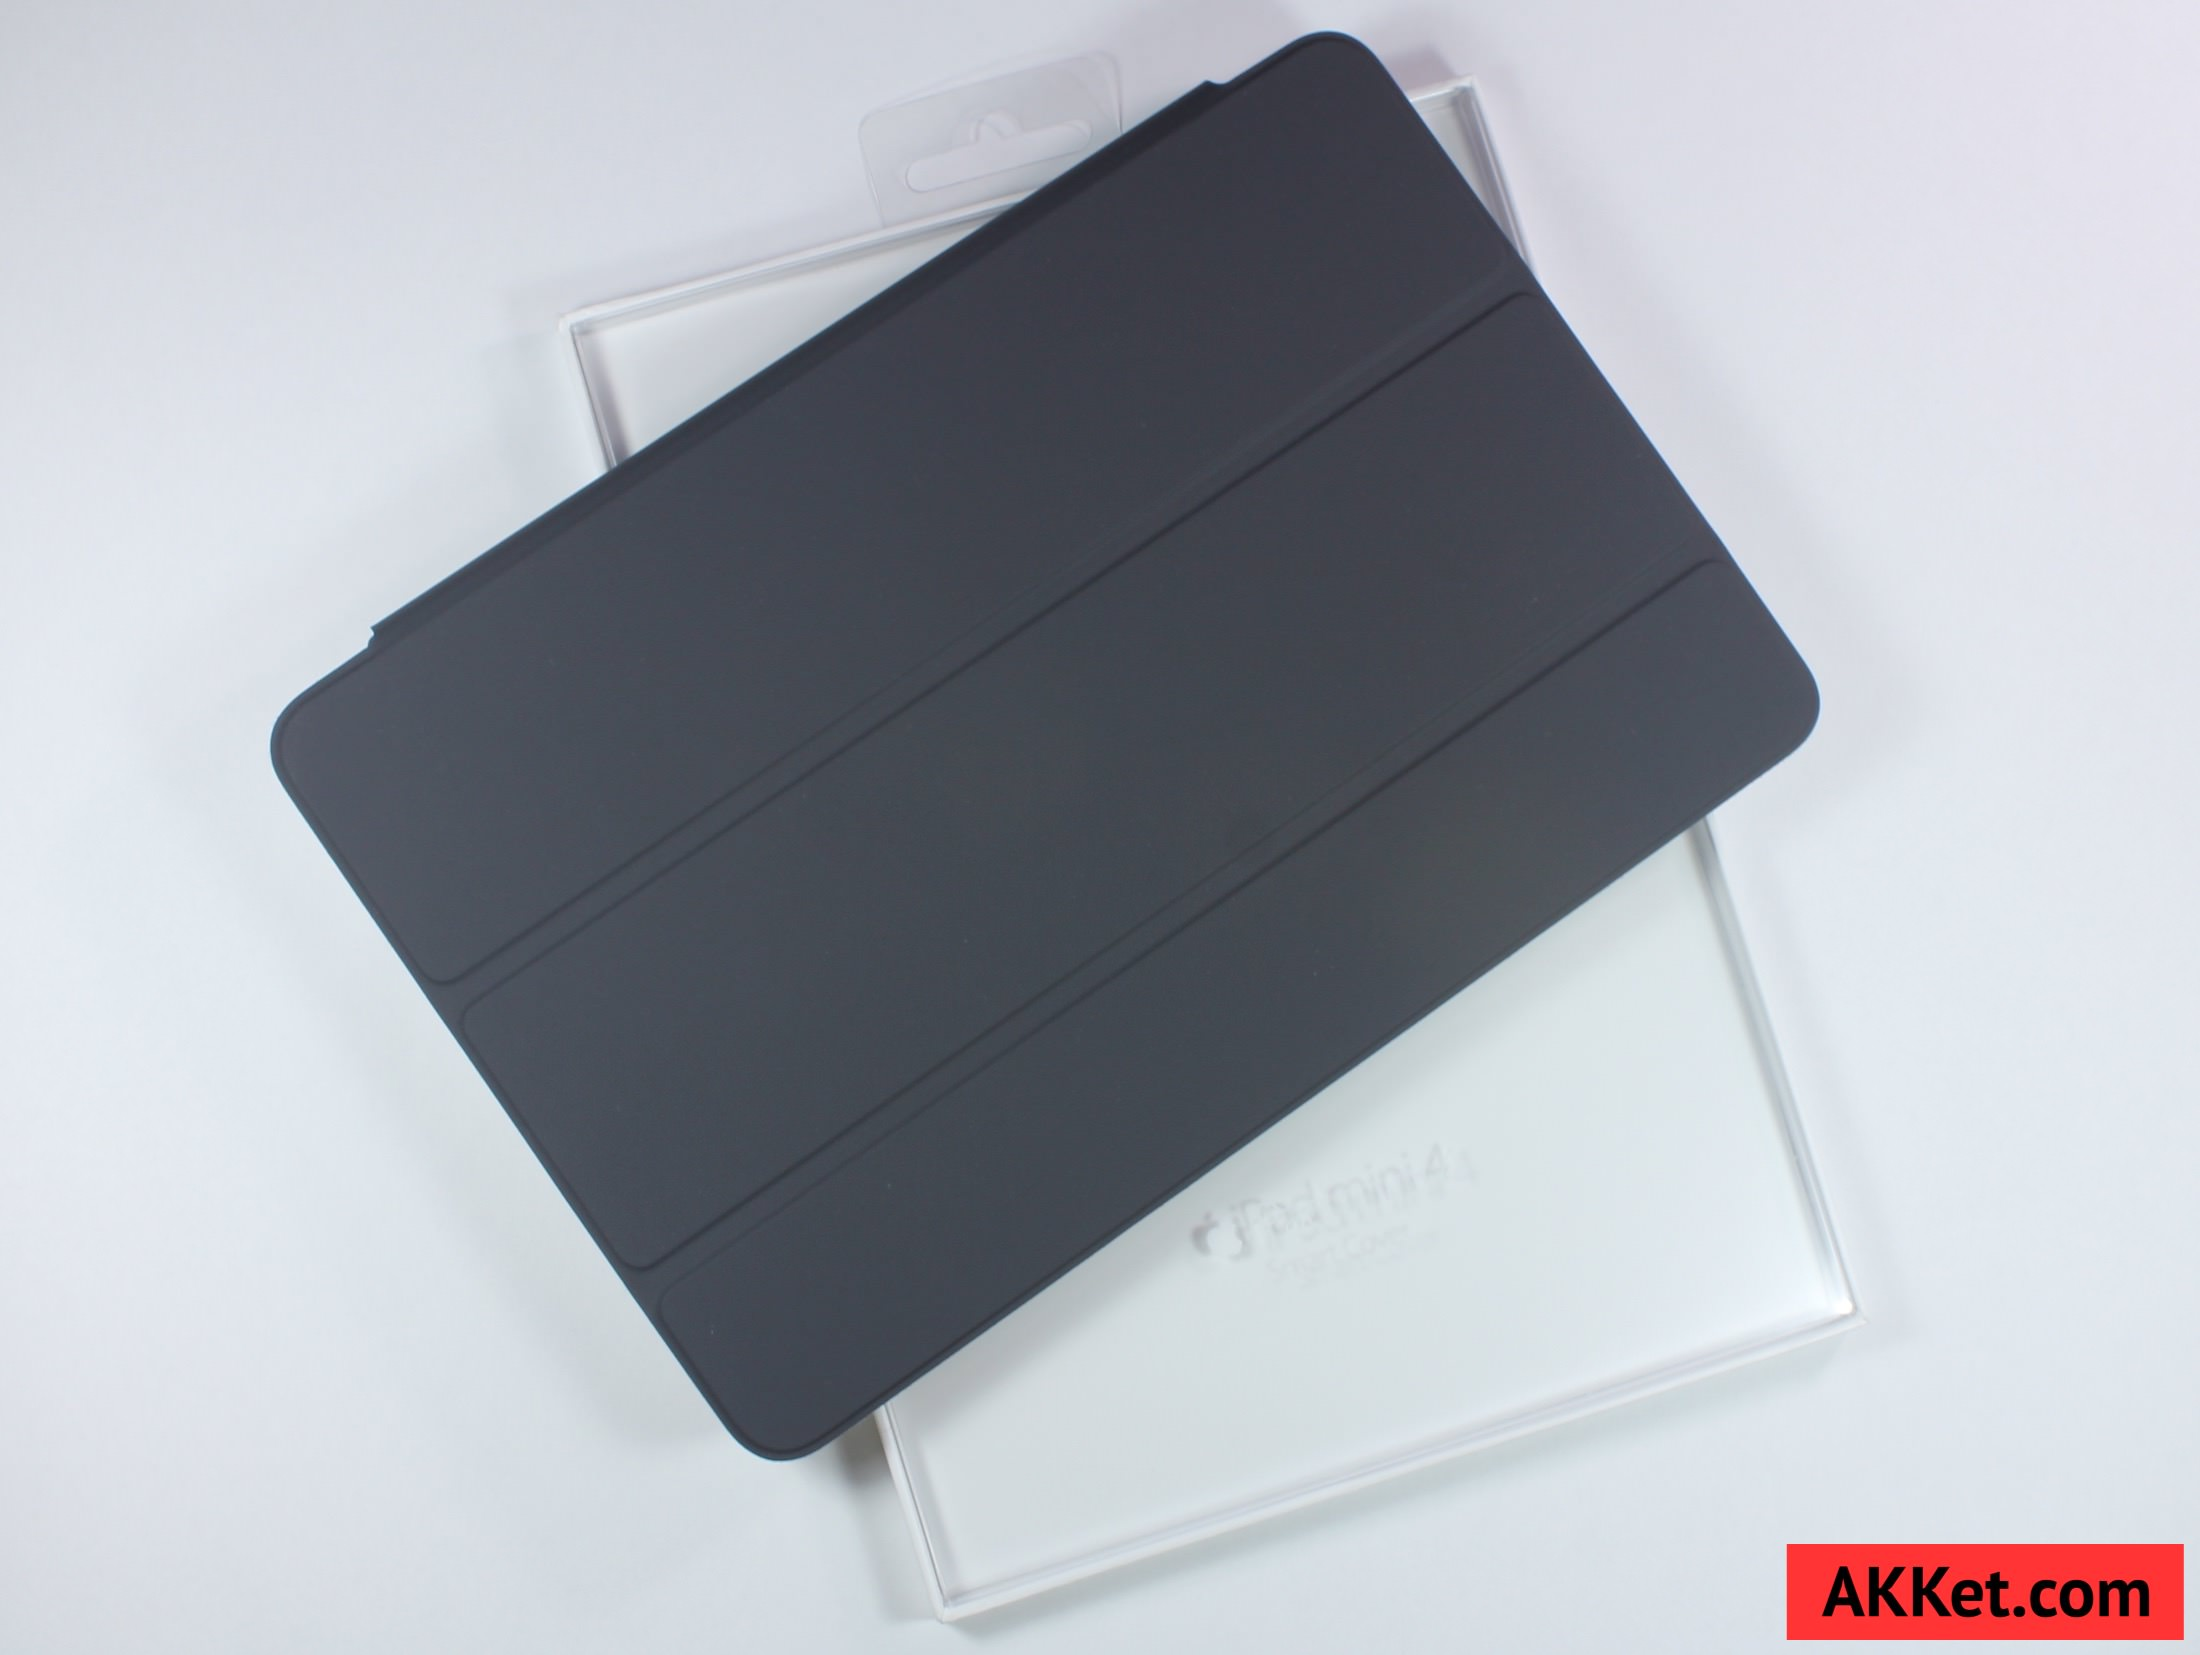 Apple Smart Cover iPad mini 4 review Charcoal Gray 4